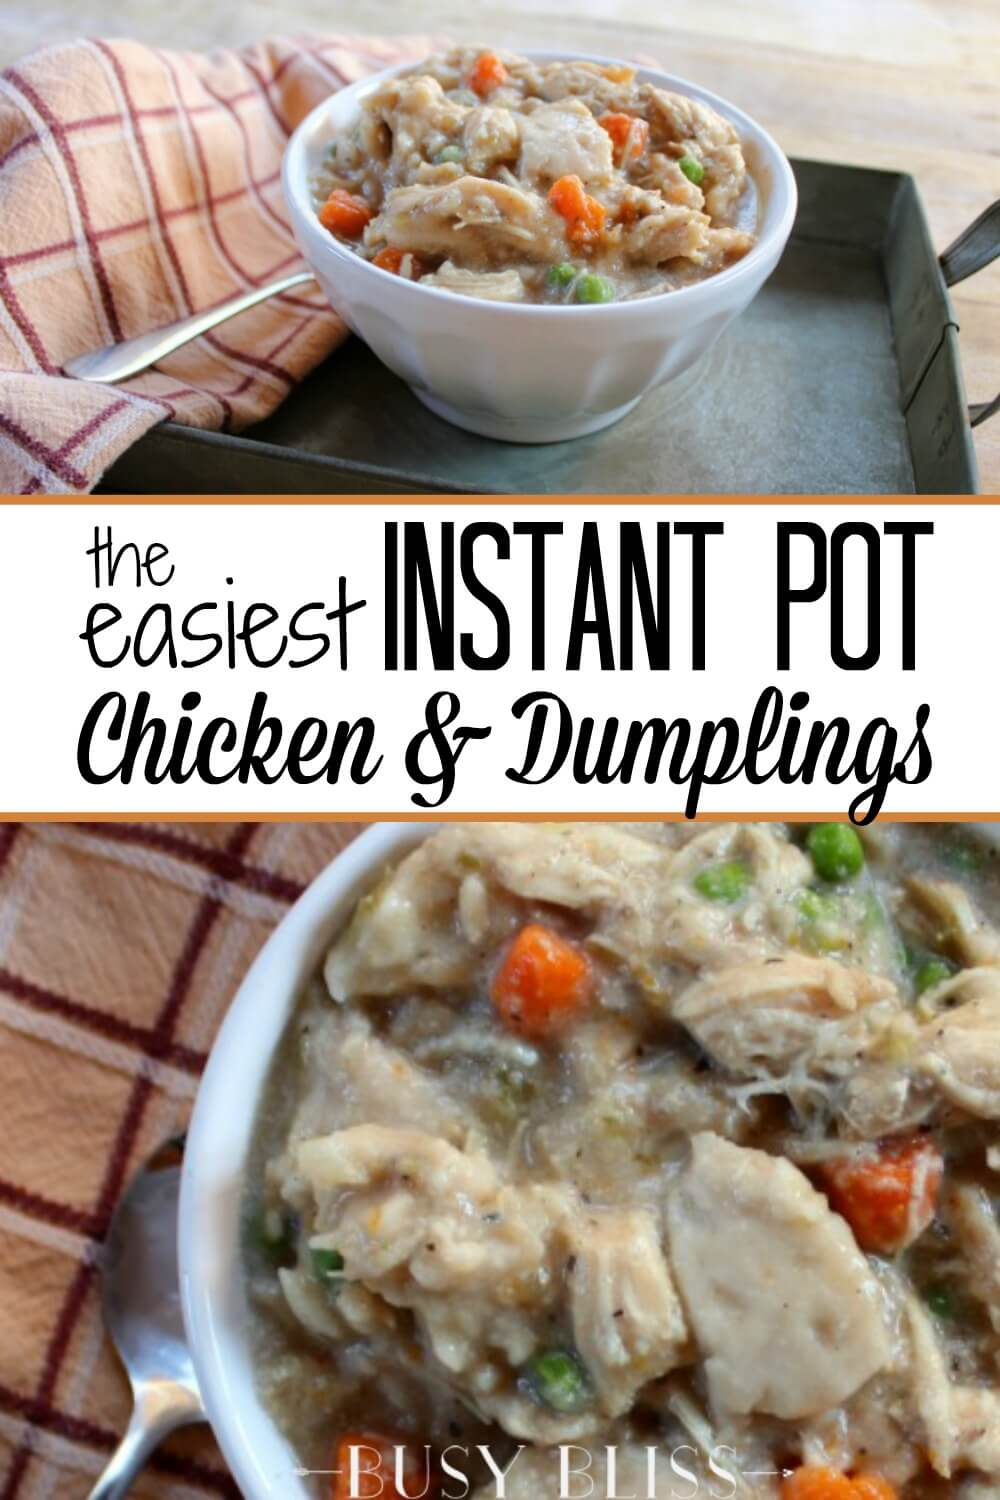 Make Chicken and Dumplings in record time with the Instant Pot! Using an electric pressure cooker and canned biscuits will have this filling soup on your dinner table in less than an hour.